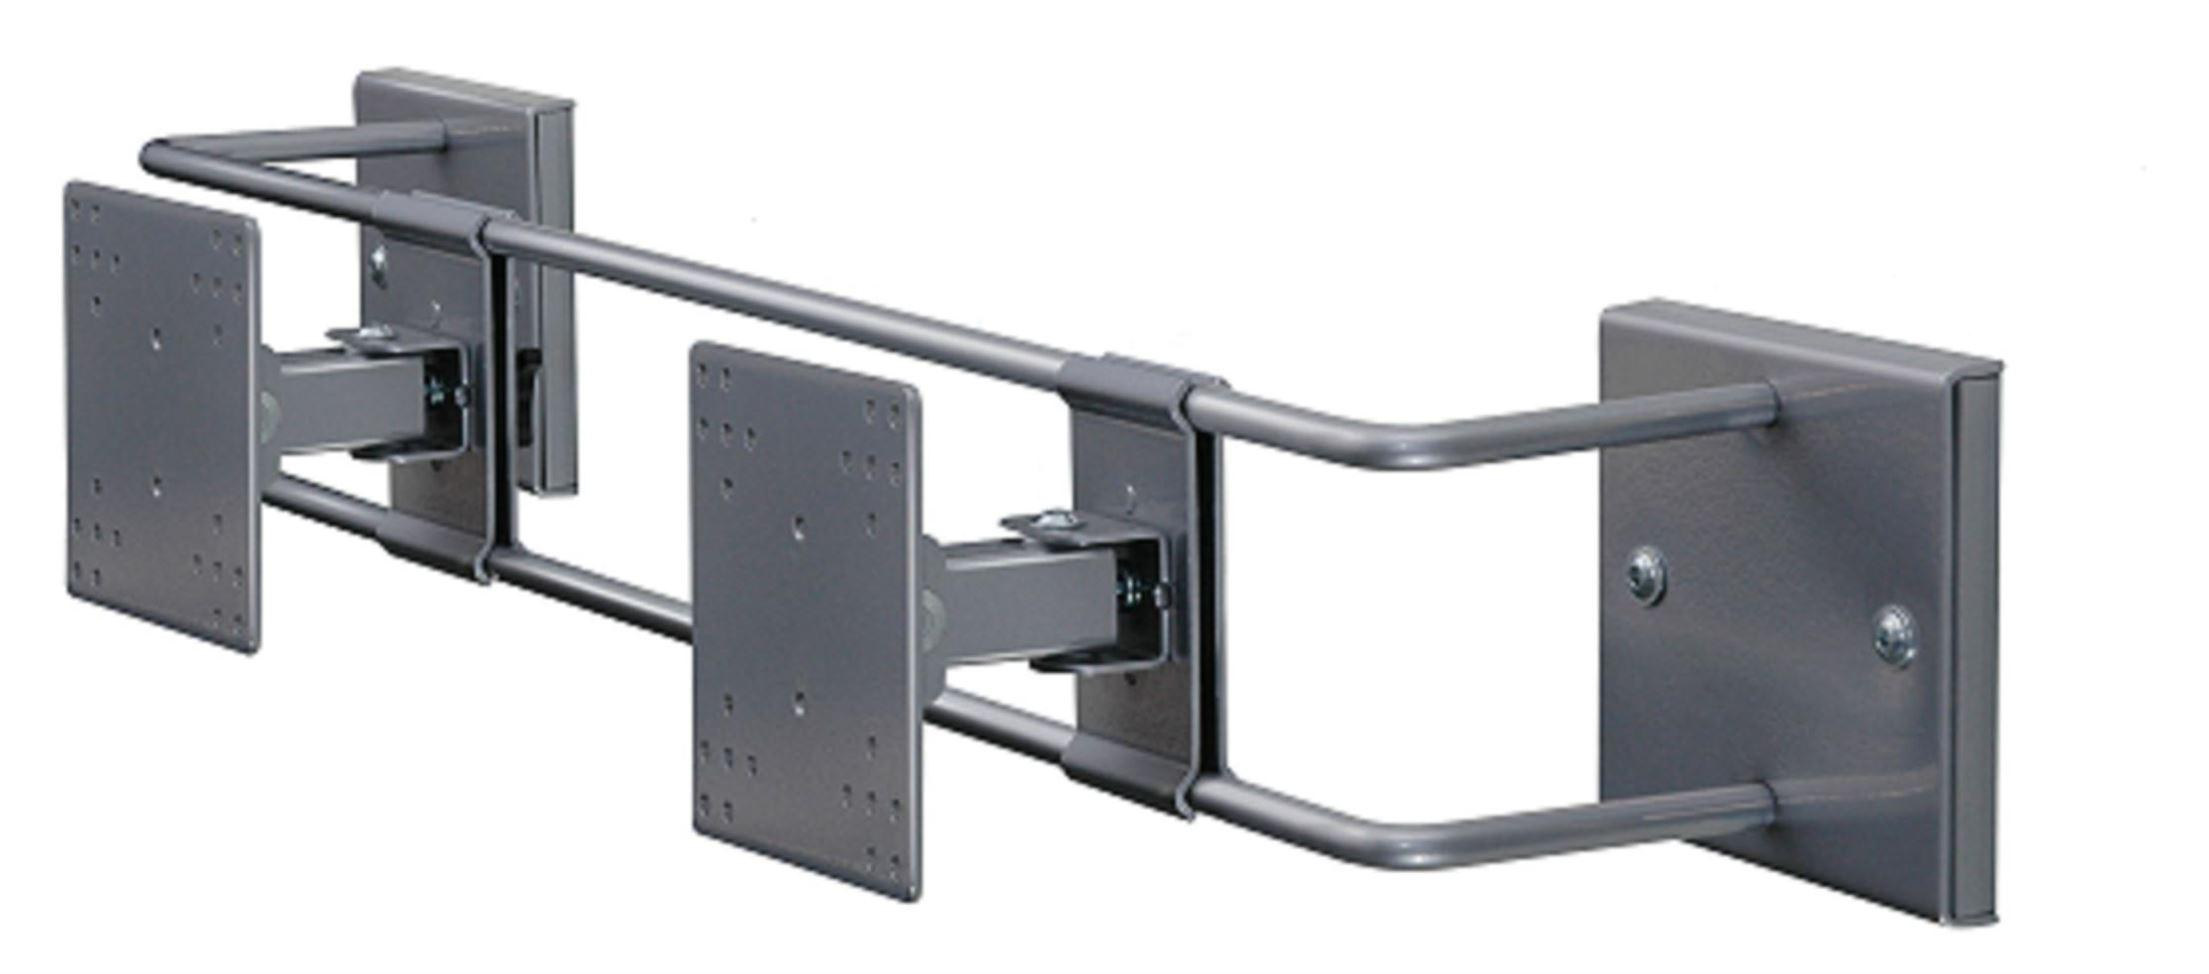 R-Go Double Screen Wall Bracket, adjustable, silver